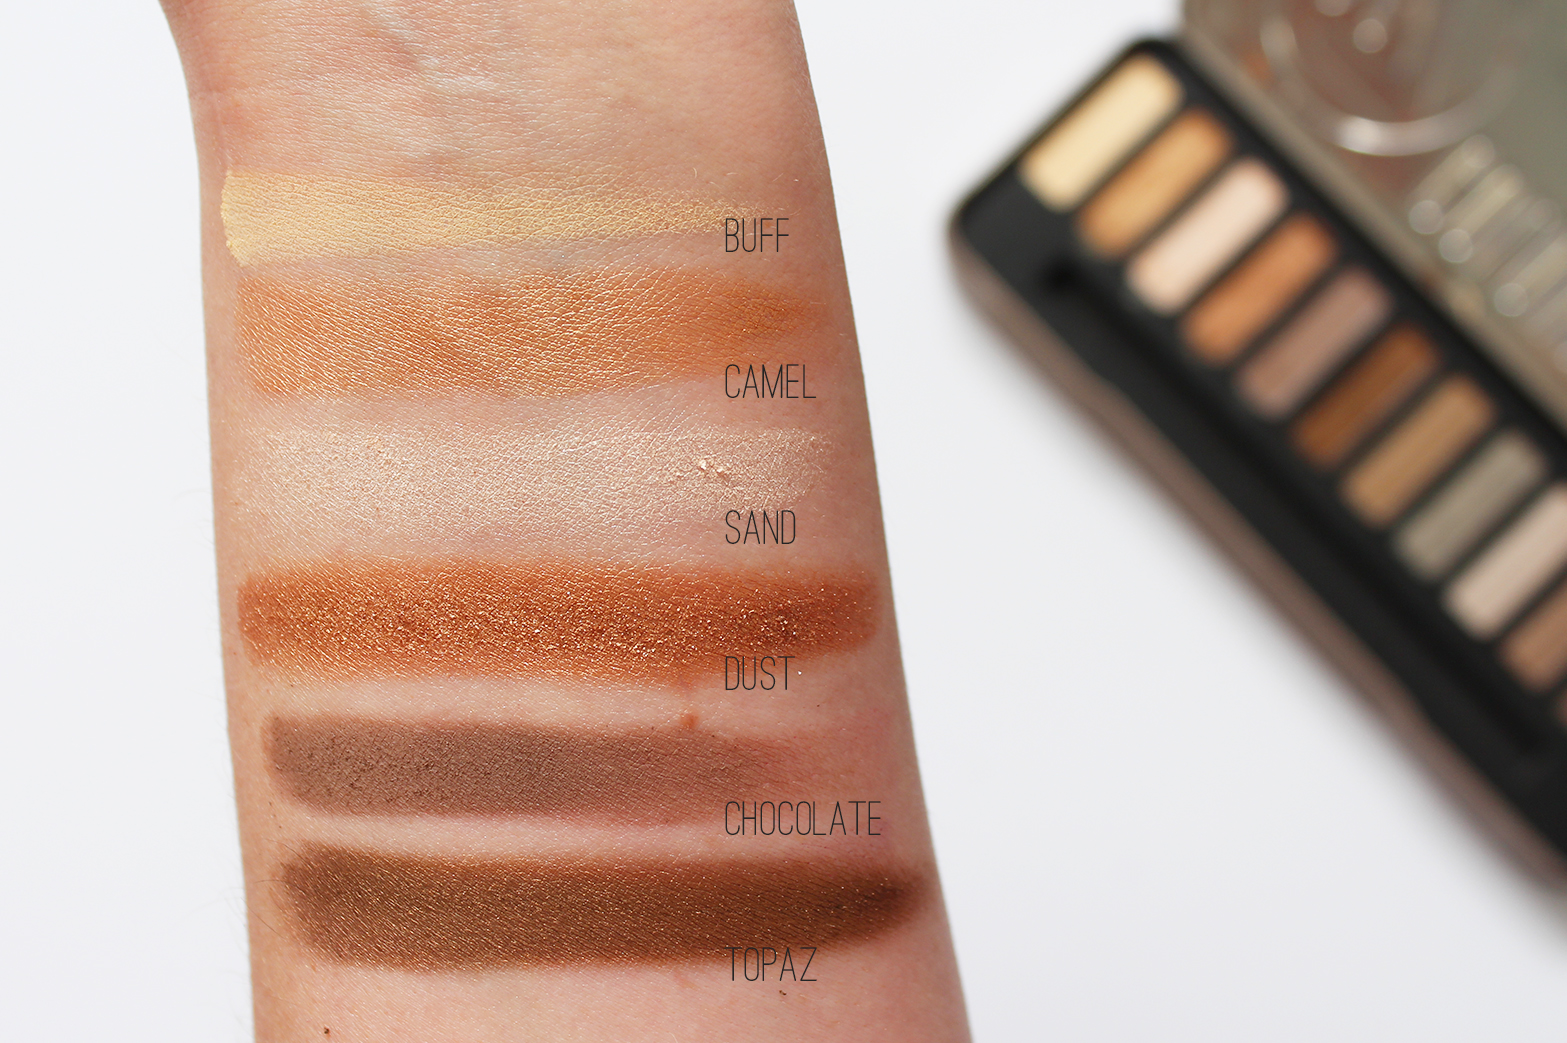 W7 | Colour Me Buff Natural Eyeshadow Palette - Review + Swatches - CassandraMyee